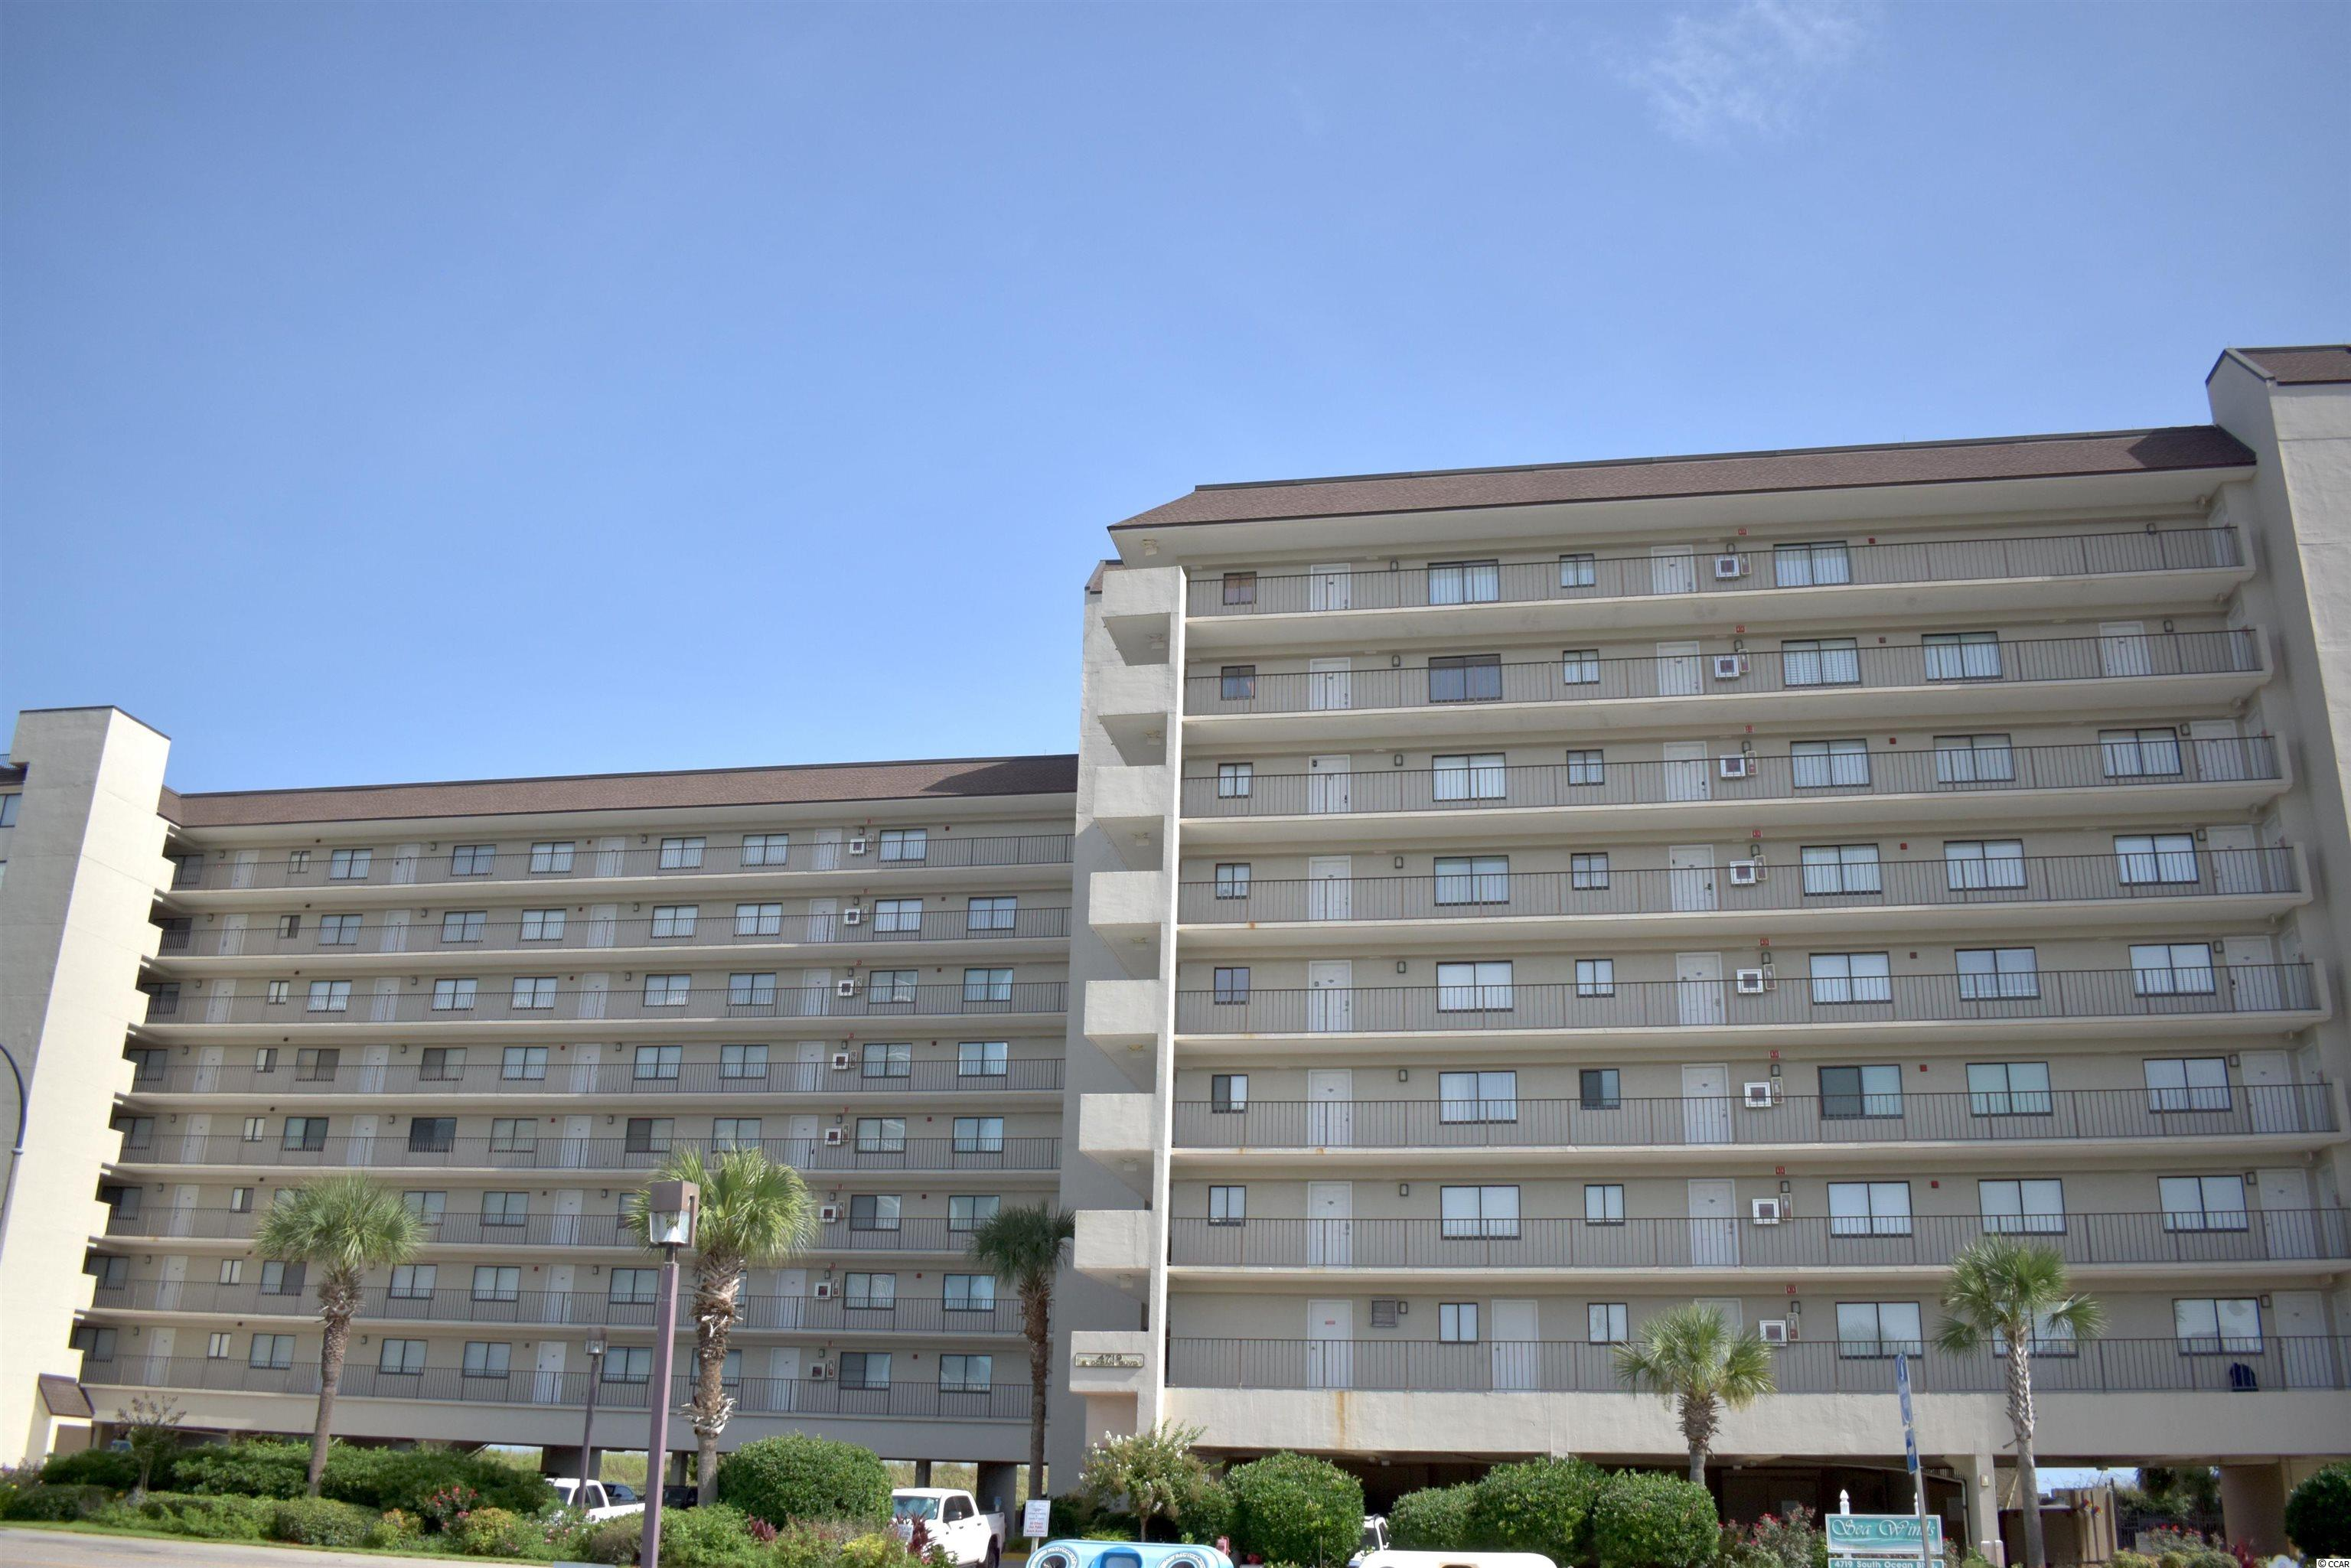 Feel the ocean breeze as you open the massive sliding glass doors that lead out to the large balcony that over looks the Atlantic Ocean.  This turnkey, DIRECT oceanfront 2 BR / 2 BA unit in the highly sought-after Sea Winds complex located in the Windy Hill section of North Myrtle Beach.  RARE double oceanview from the master bedroom and living room.  This 3rd Floor Oceanfront property is being sold completely furnished!  This unit has upgraded flooring, appliances, window treatments, bedding , furniture, Tv's and new showers installed in both bathrooms.  This property is perfect for a second home, vacation rental or even as a primary residence.  Sea Winds is located across from Barefoot Landing which has several great restaurants, shops, and much more.  Units rarely come up in this building so don't miss out on this one.